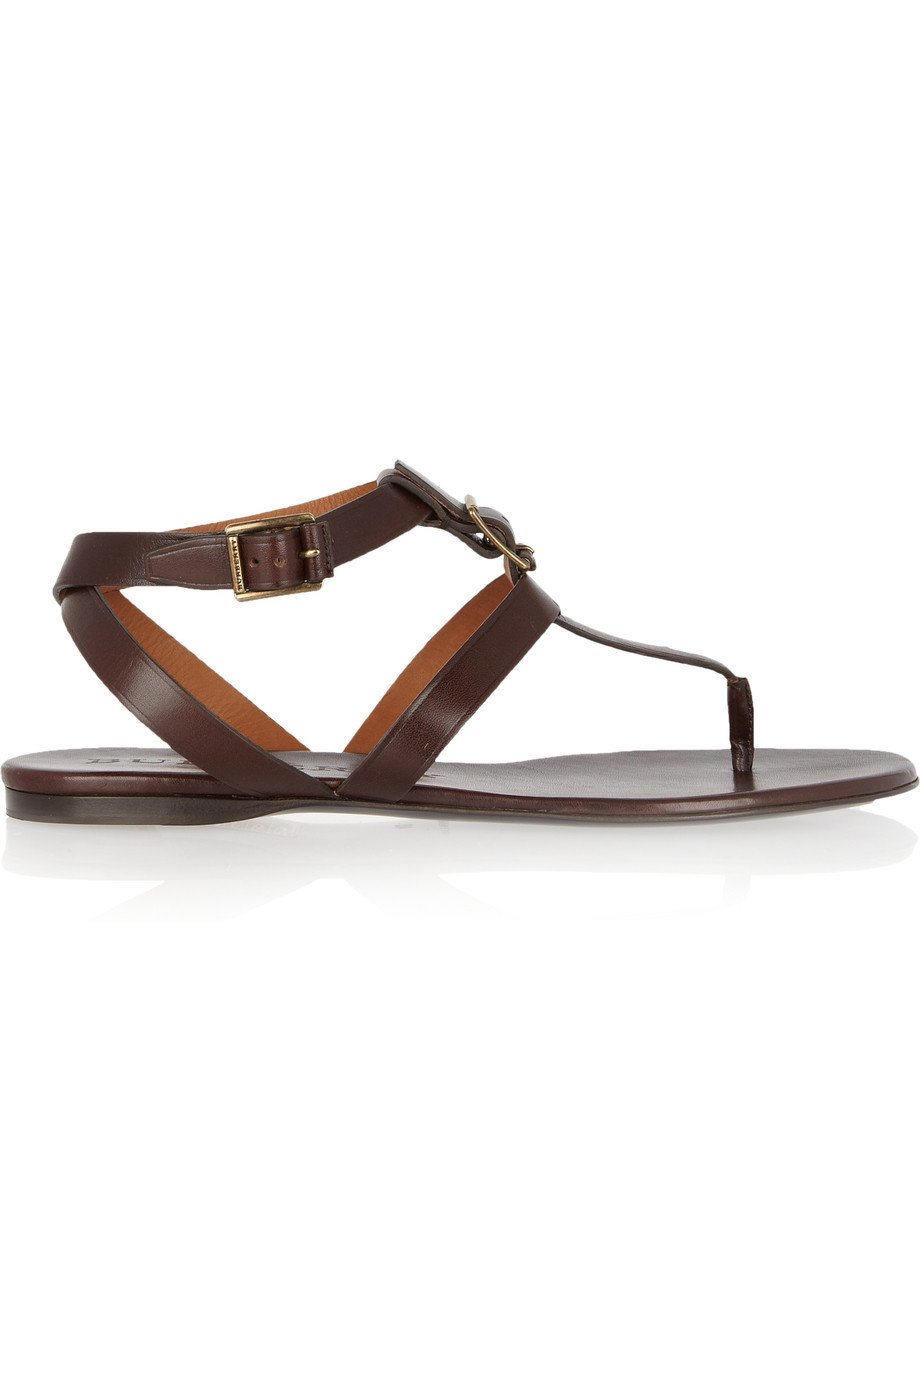 Lyst Burberry Leather T Bar Sandals In Brown